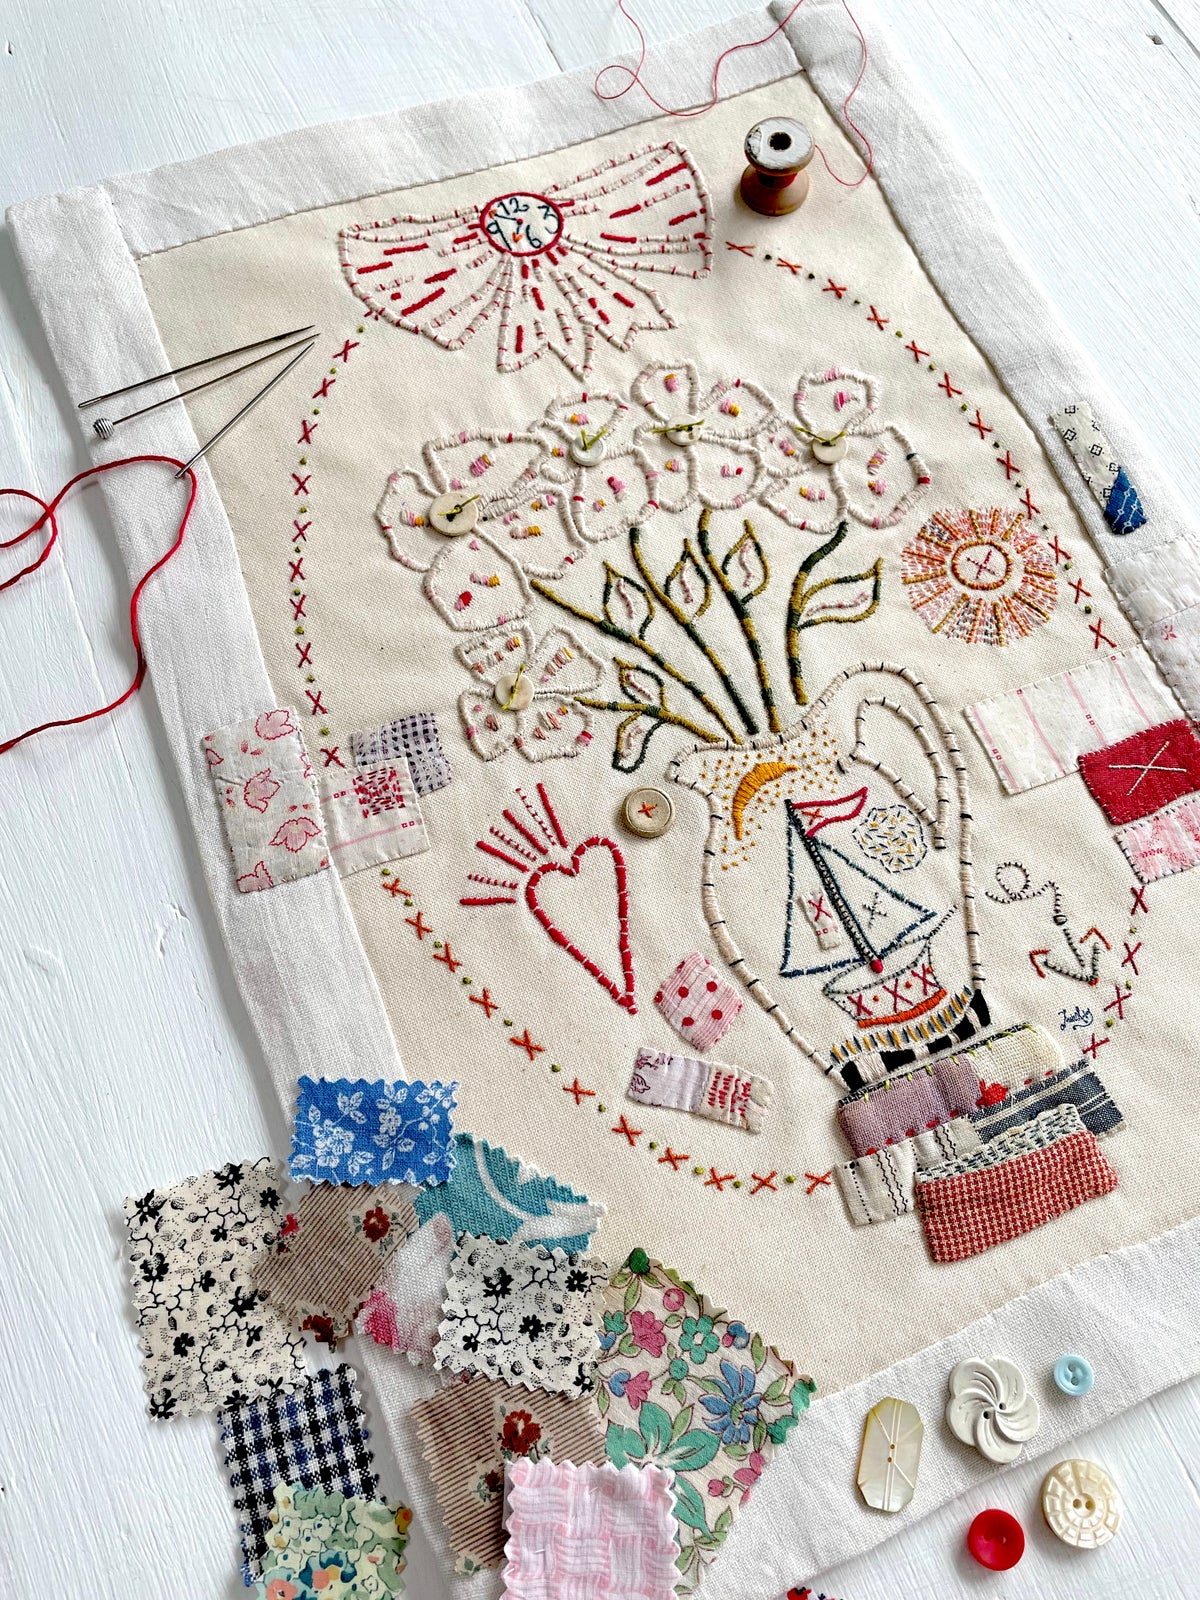 Image of 'Jug & Flowers' large embroidery template